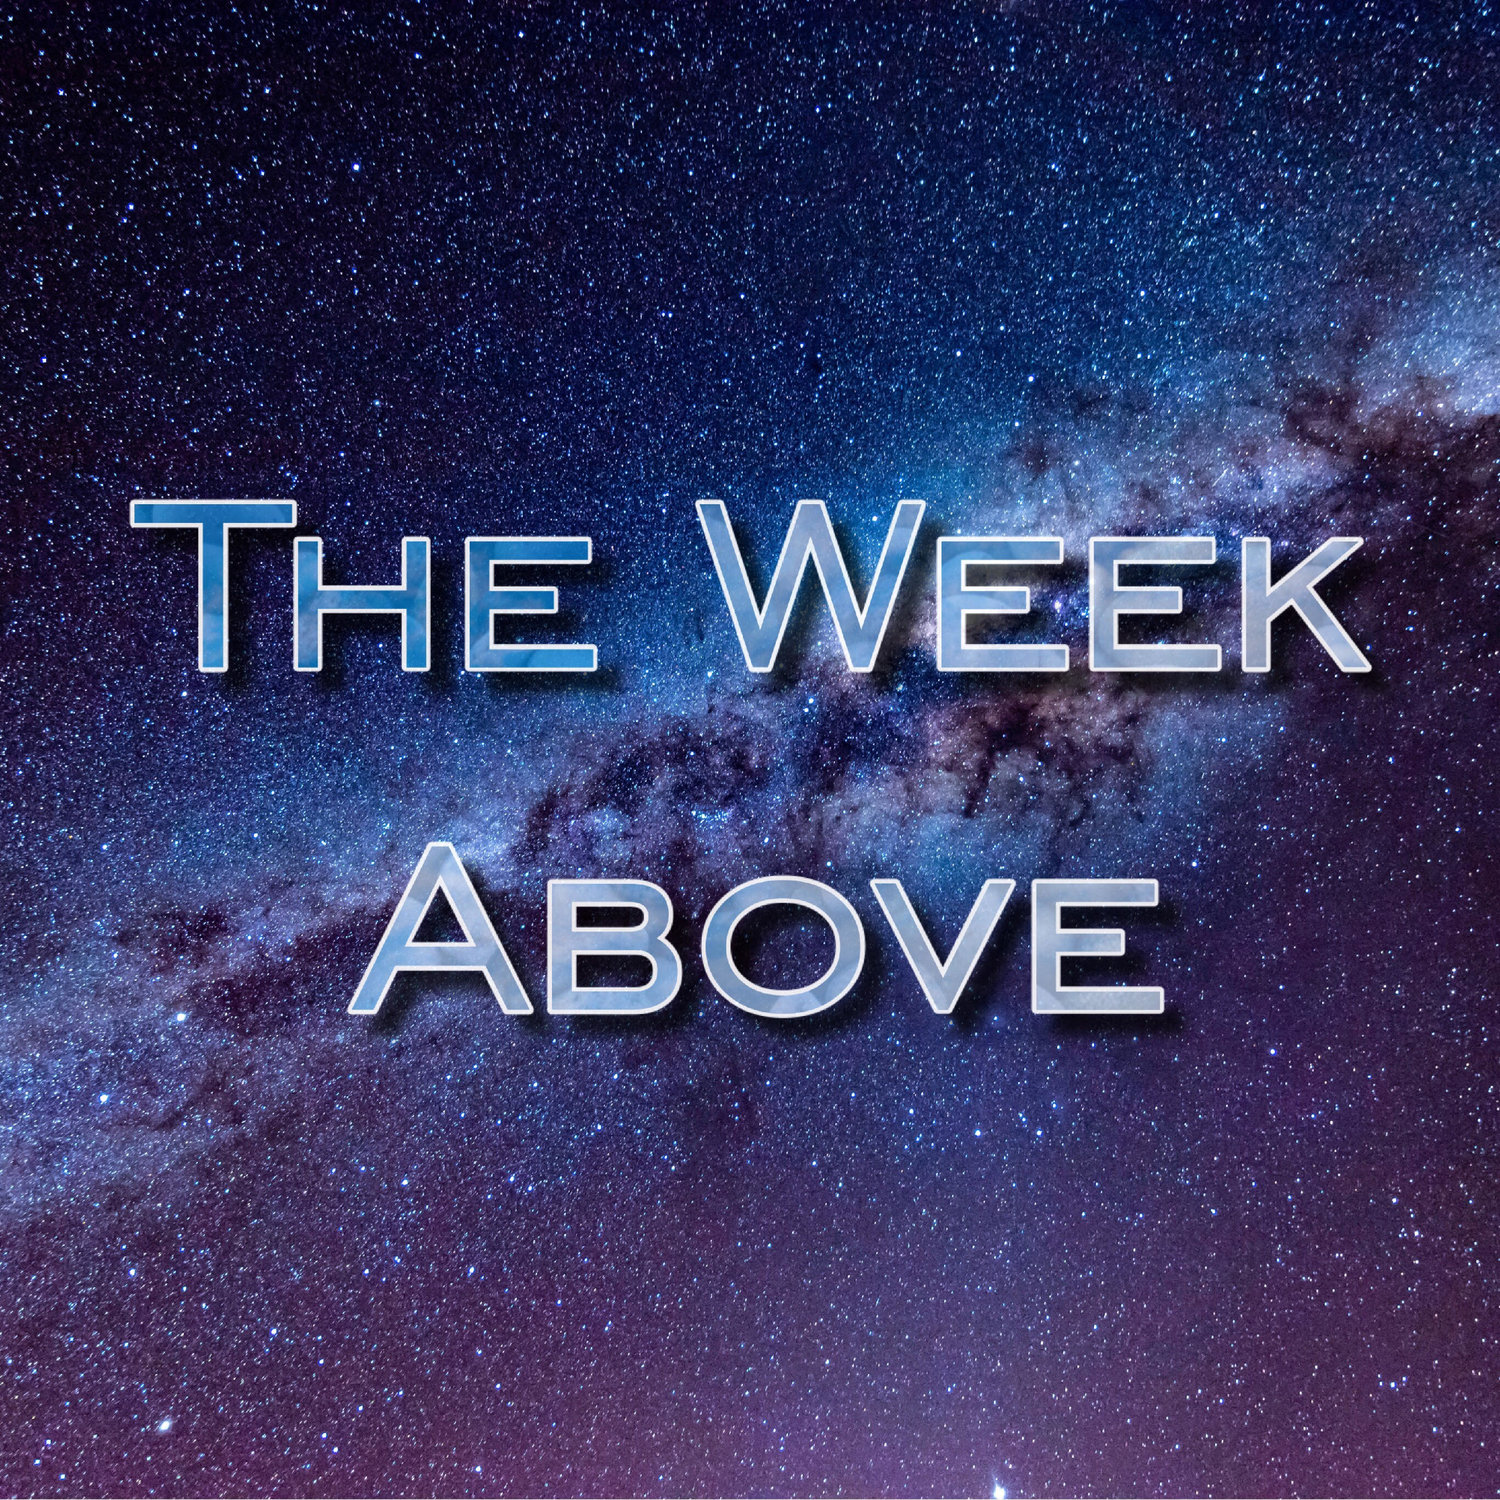 The Week Above - Astrology of June 9th - June 15th: Sun opposed